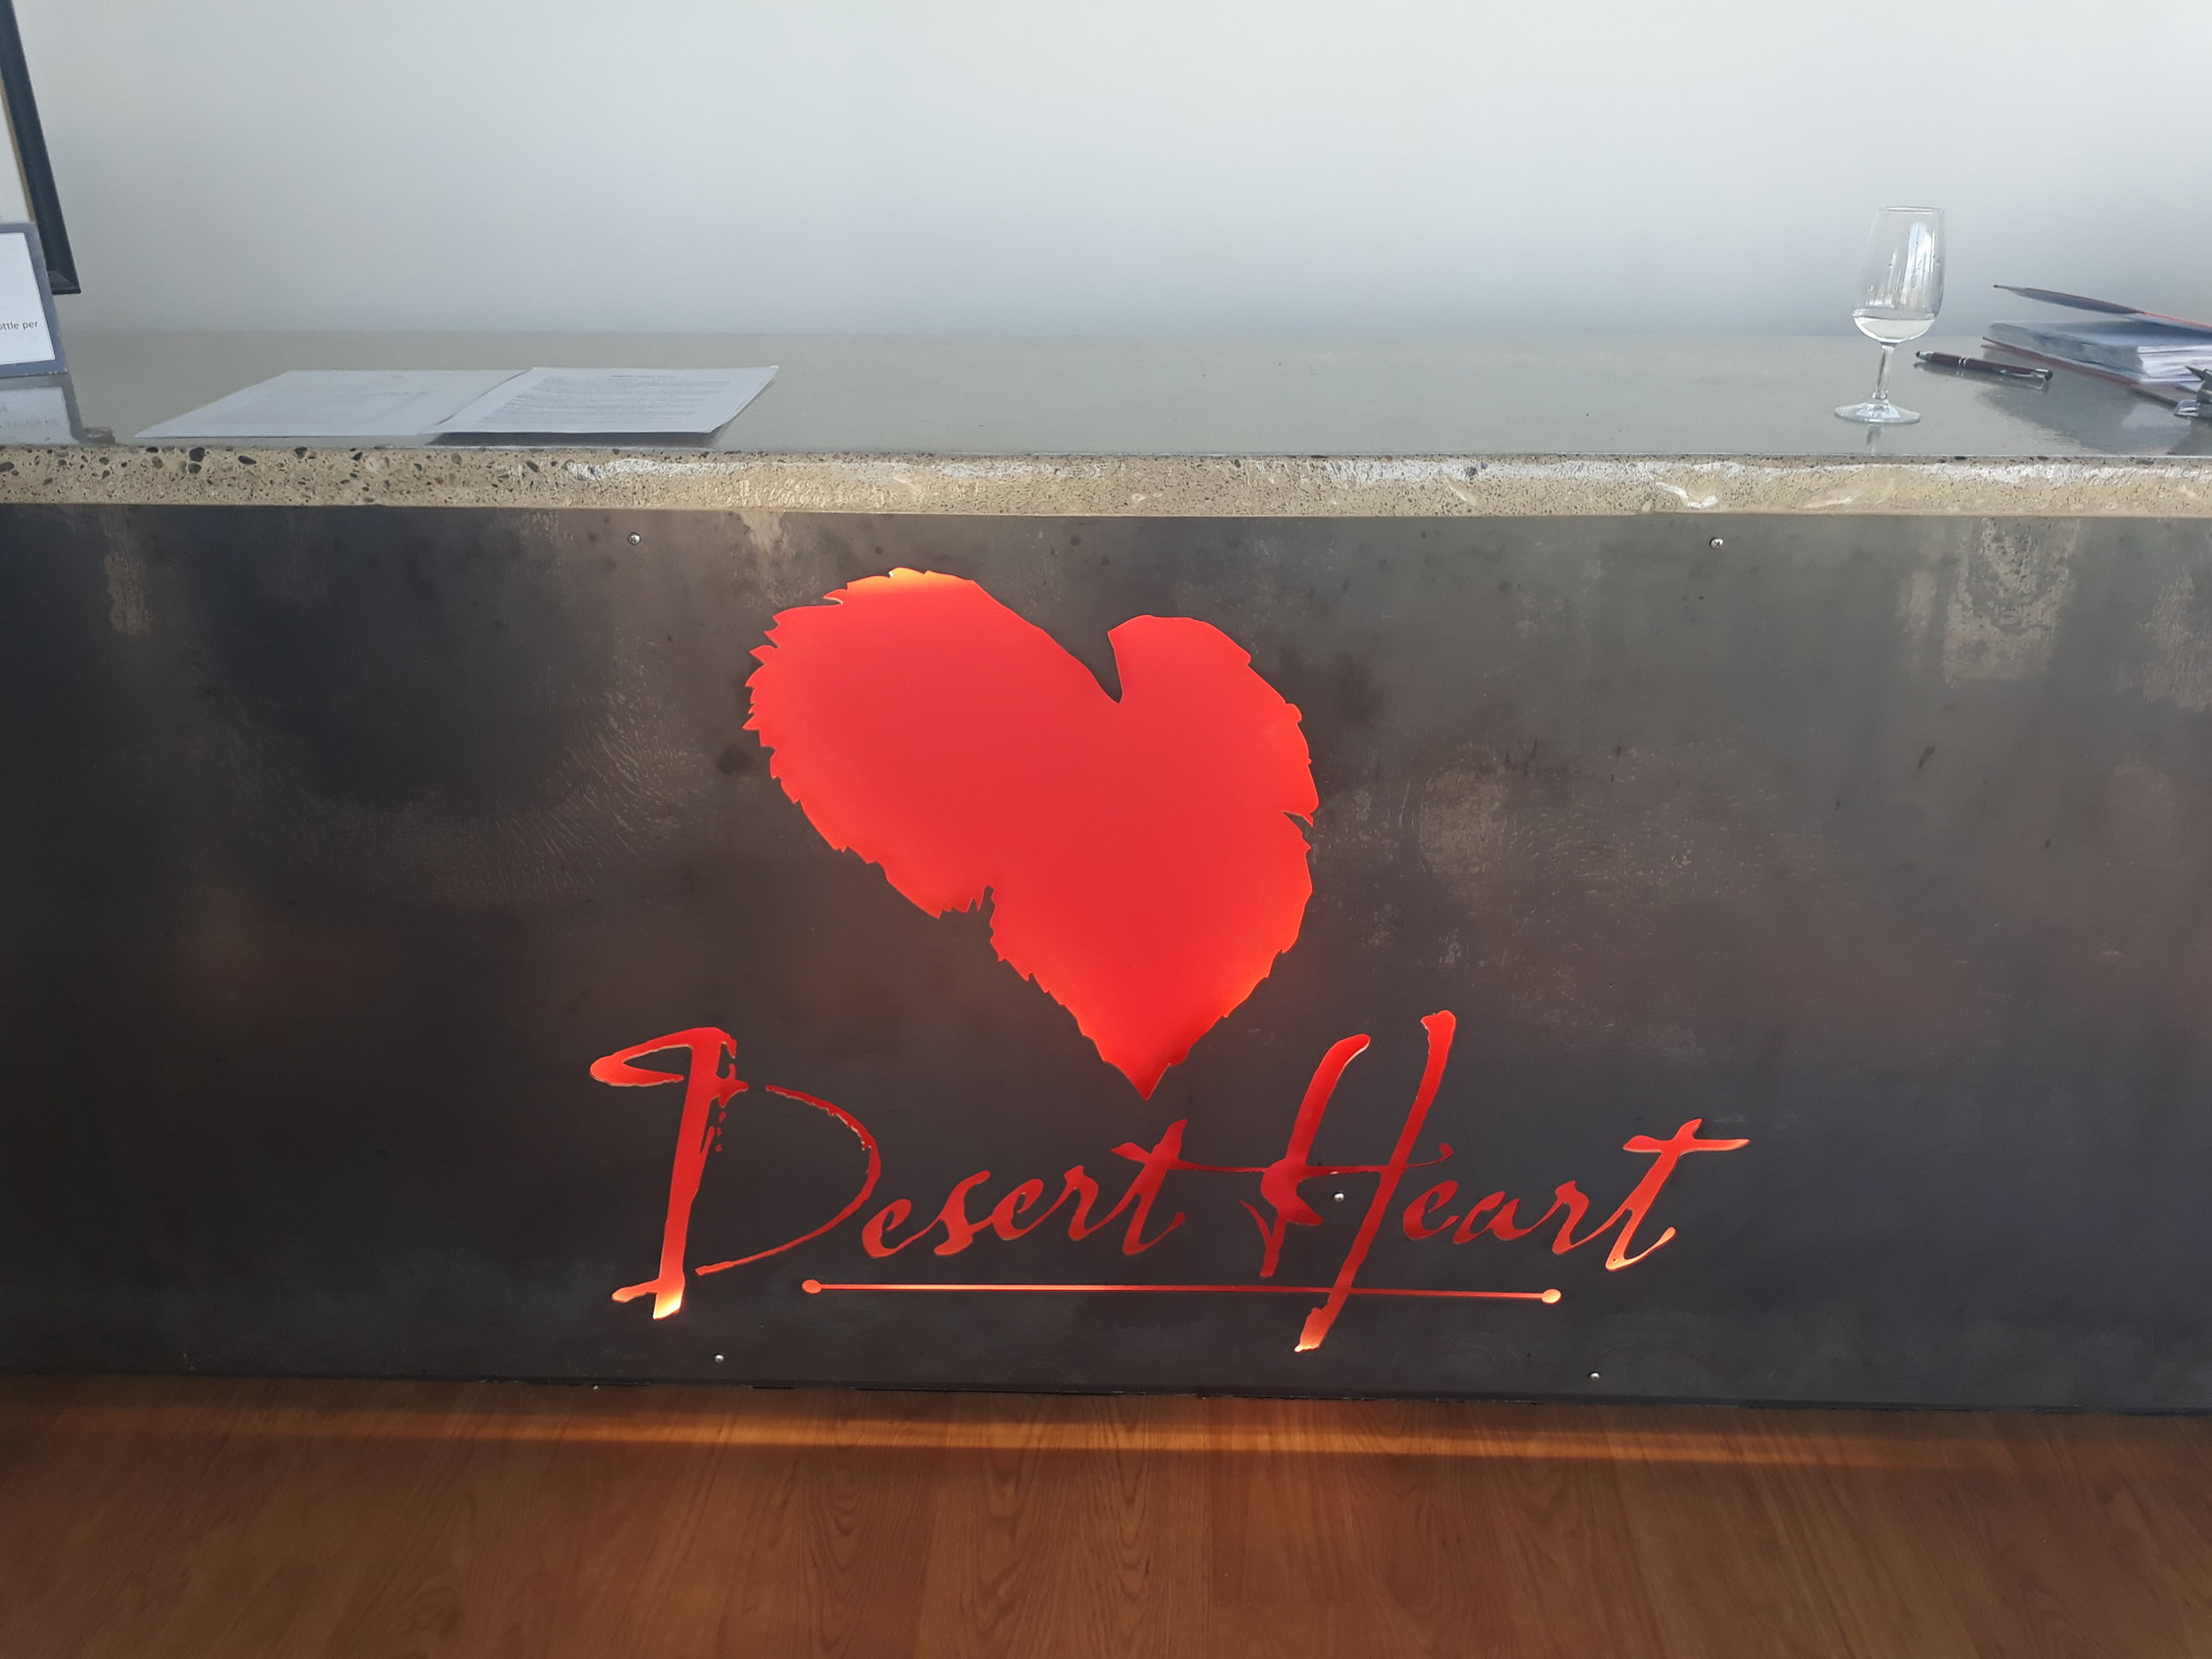 Desert Heart's iconic logo represents both a heart, as well as the shape & colour of a grape leaf in autumn.